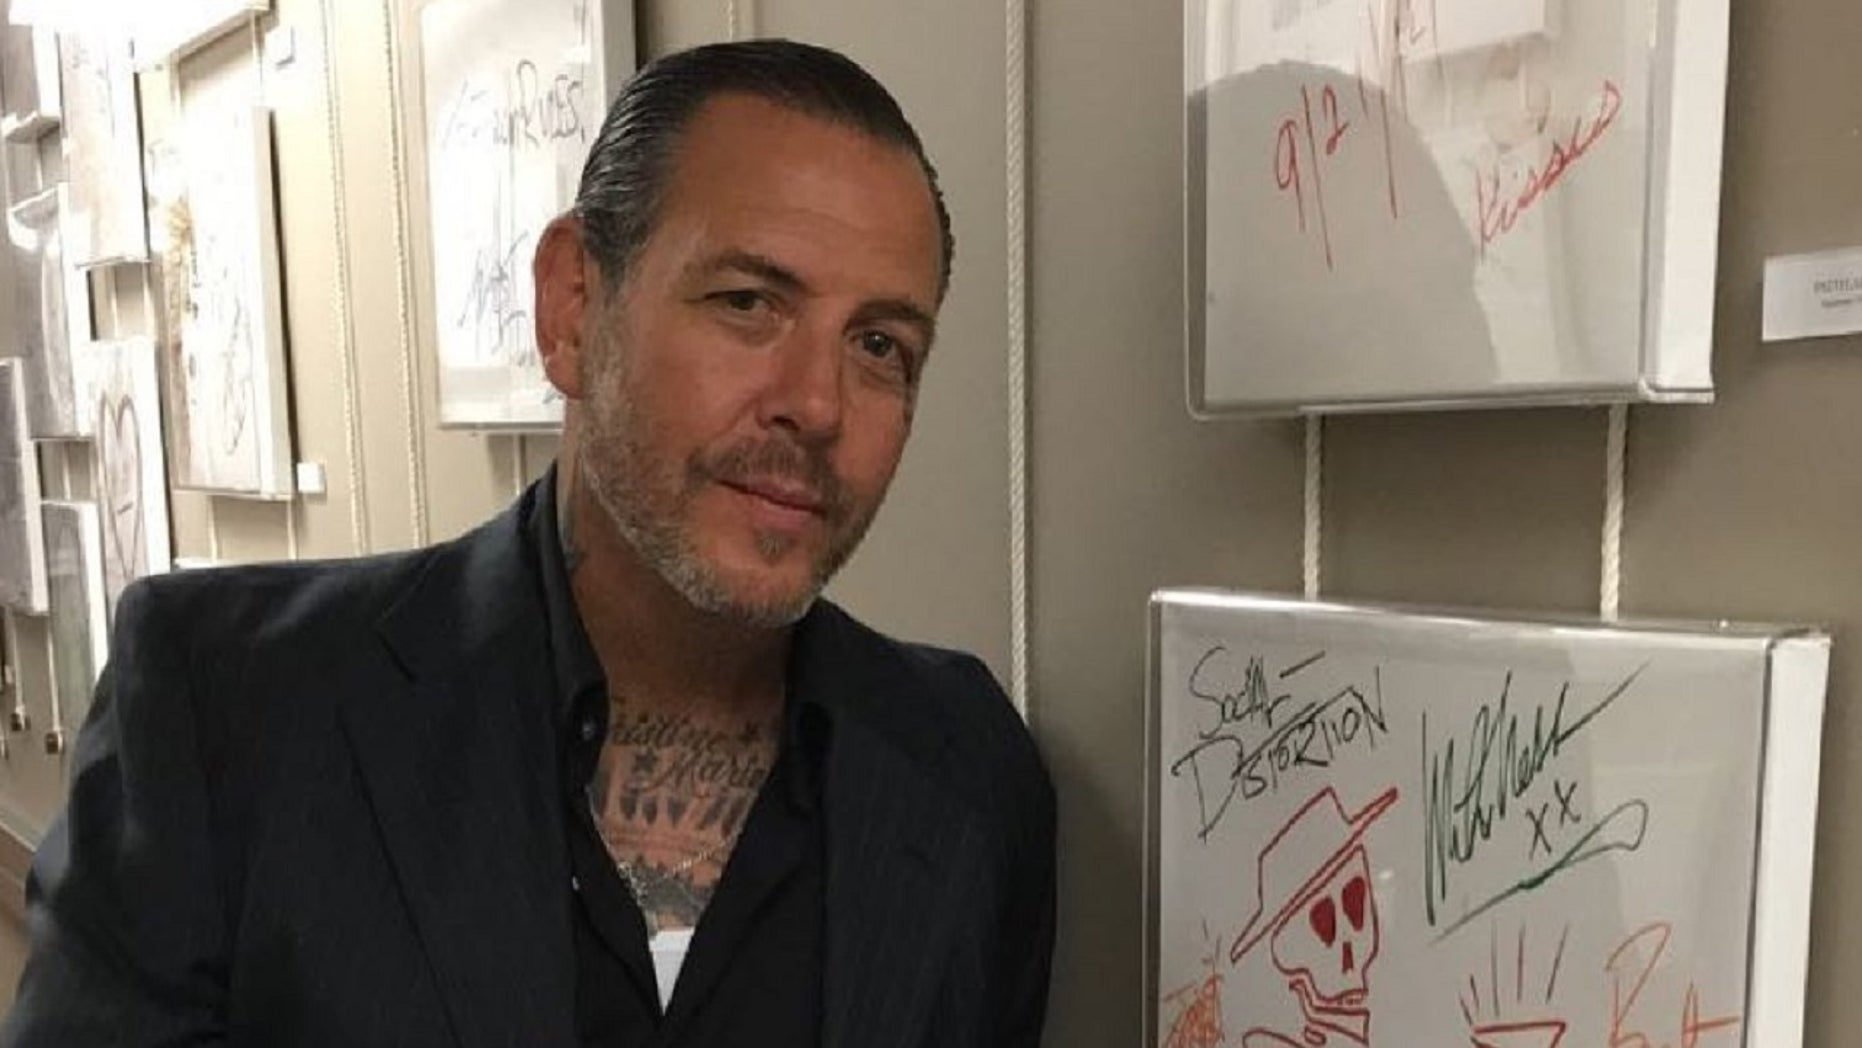 Mike Ness, 56, is the lead singer of the punk rock band Social Distortion.